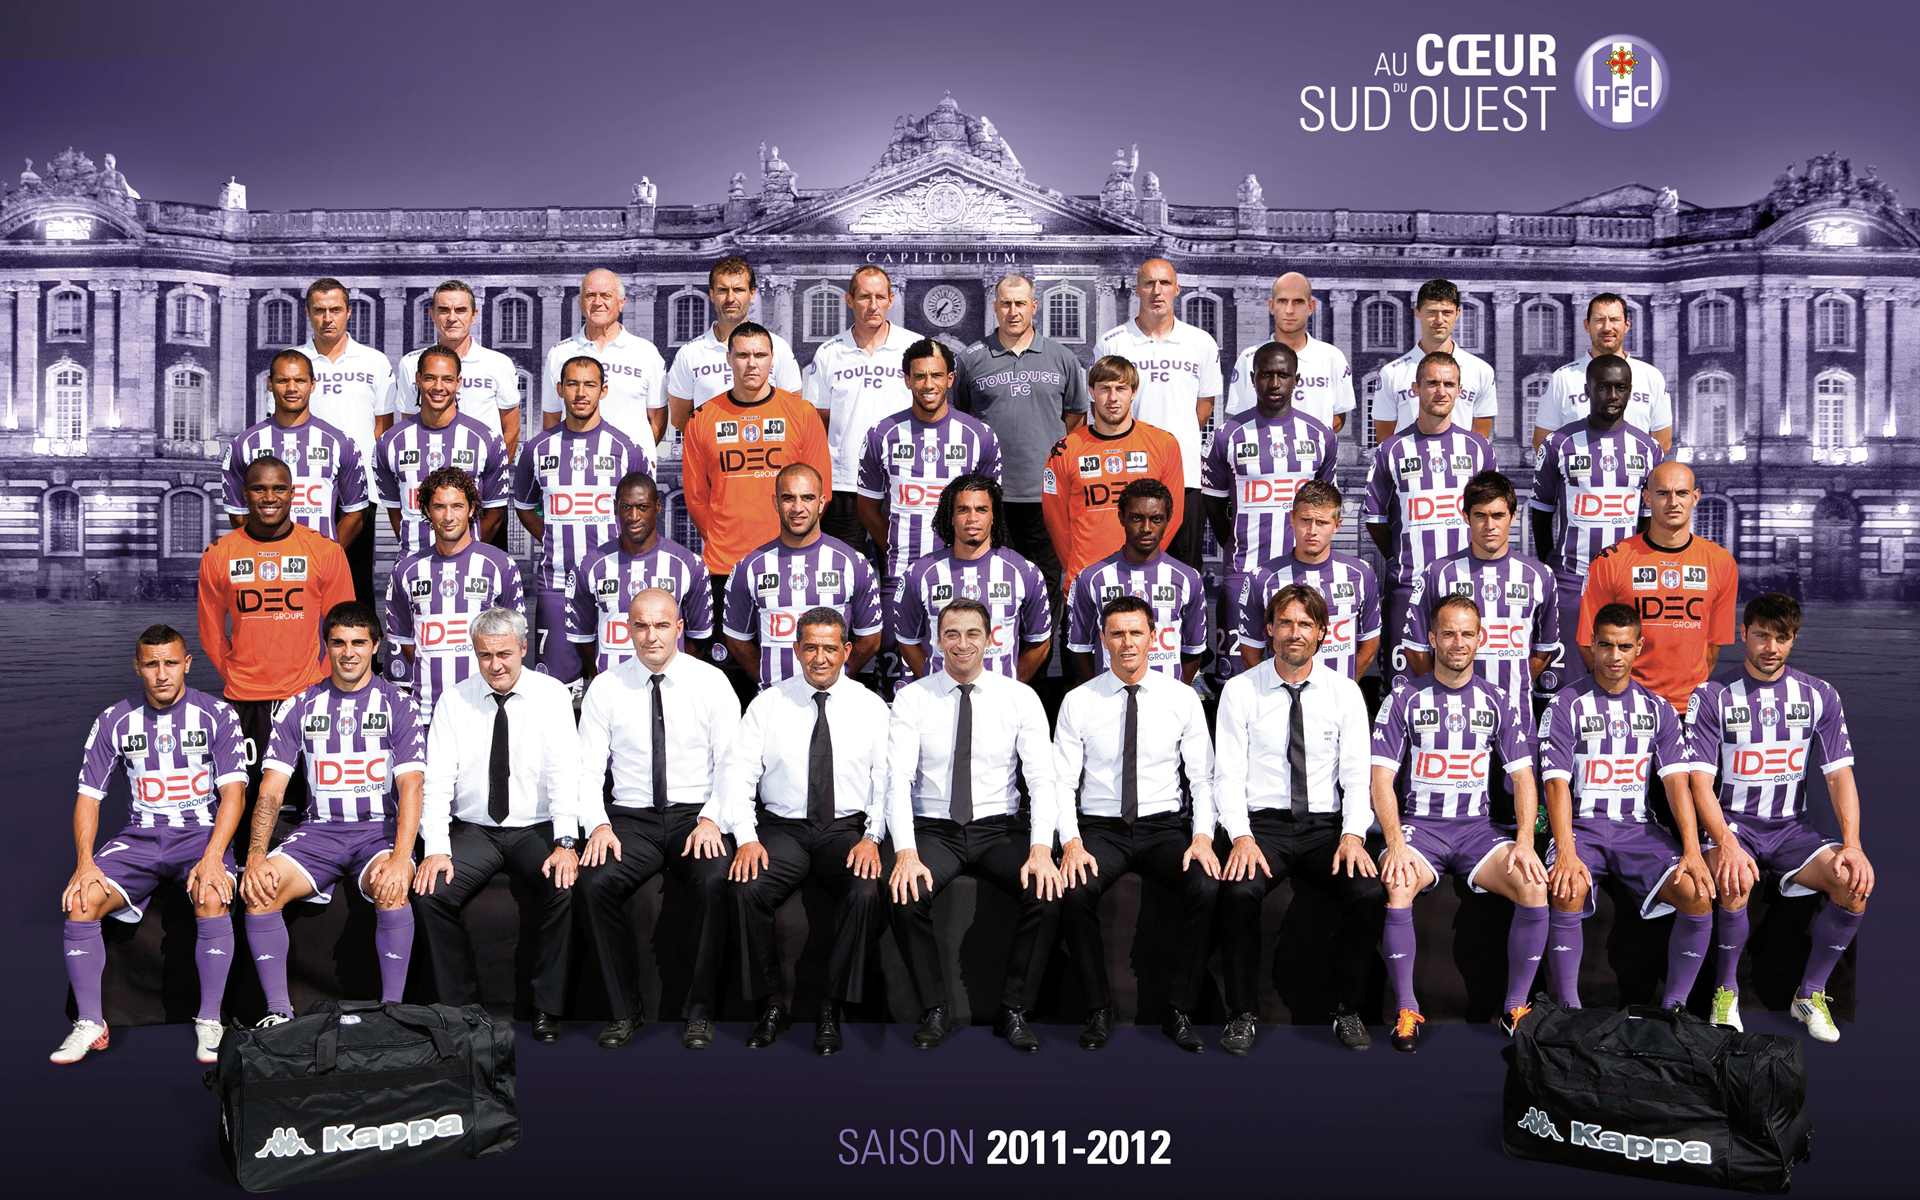 poster-officiel-tfc-2011-2012.jpg